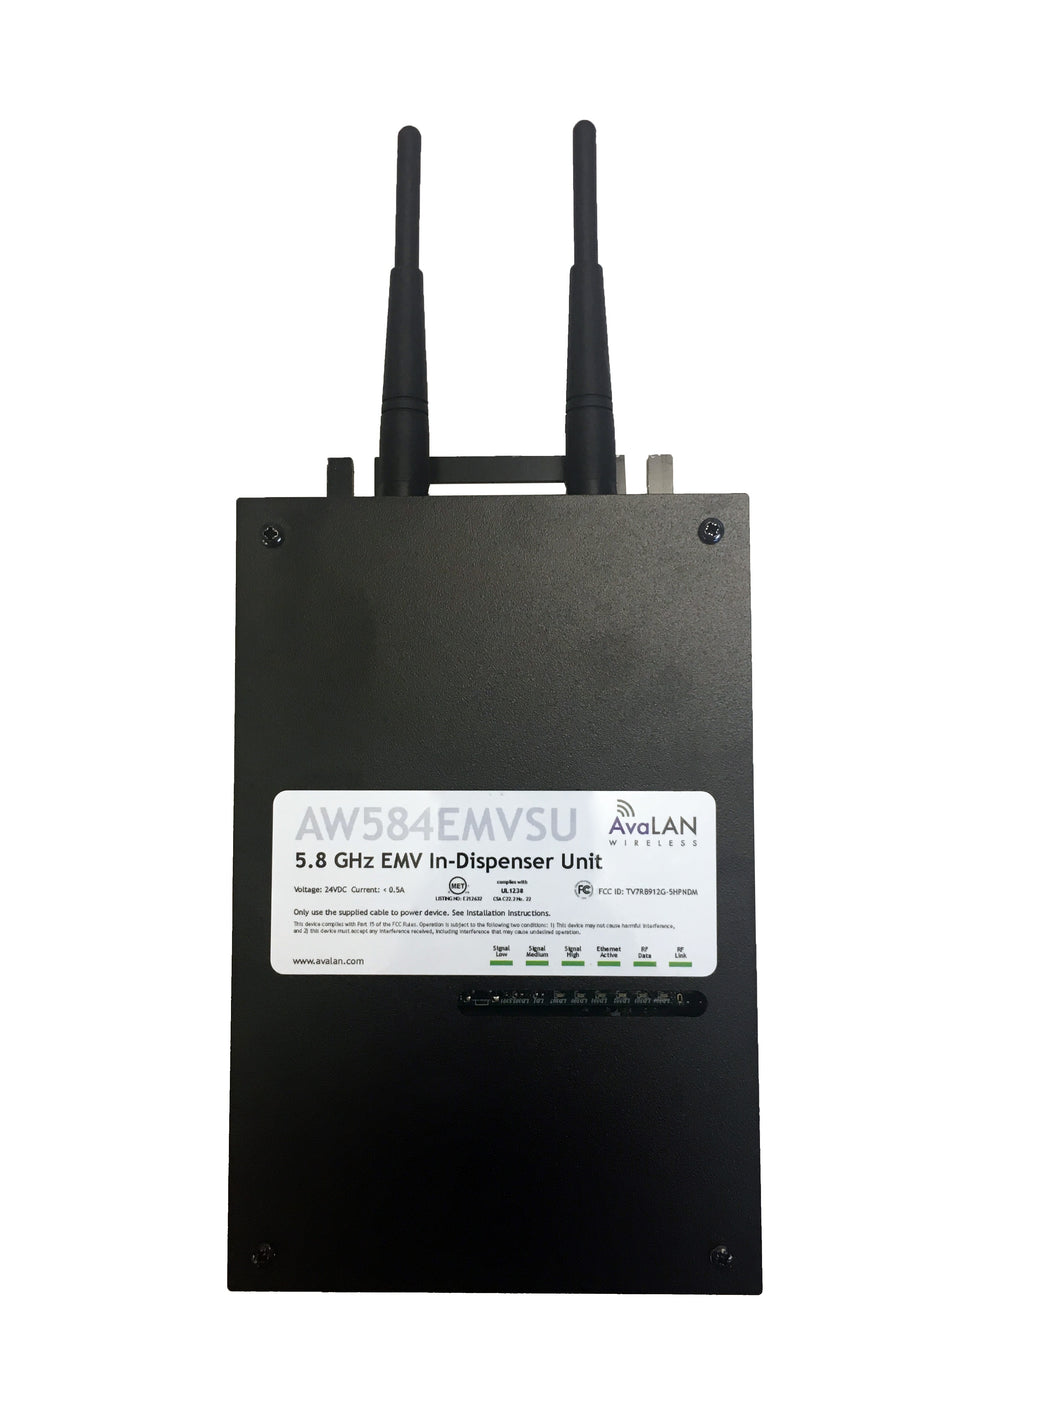 AW584EMVSU Wireless In-Dispenser Unit with Network Switch